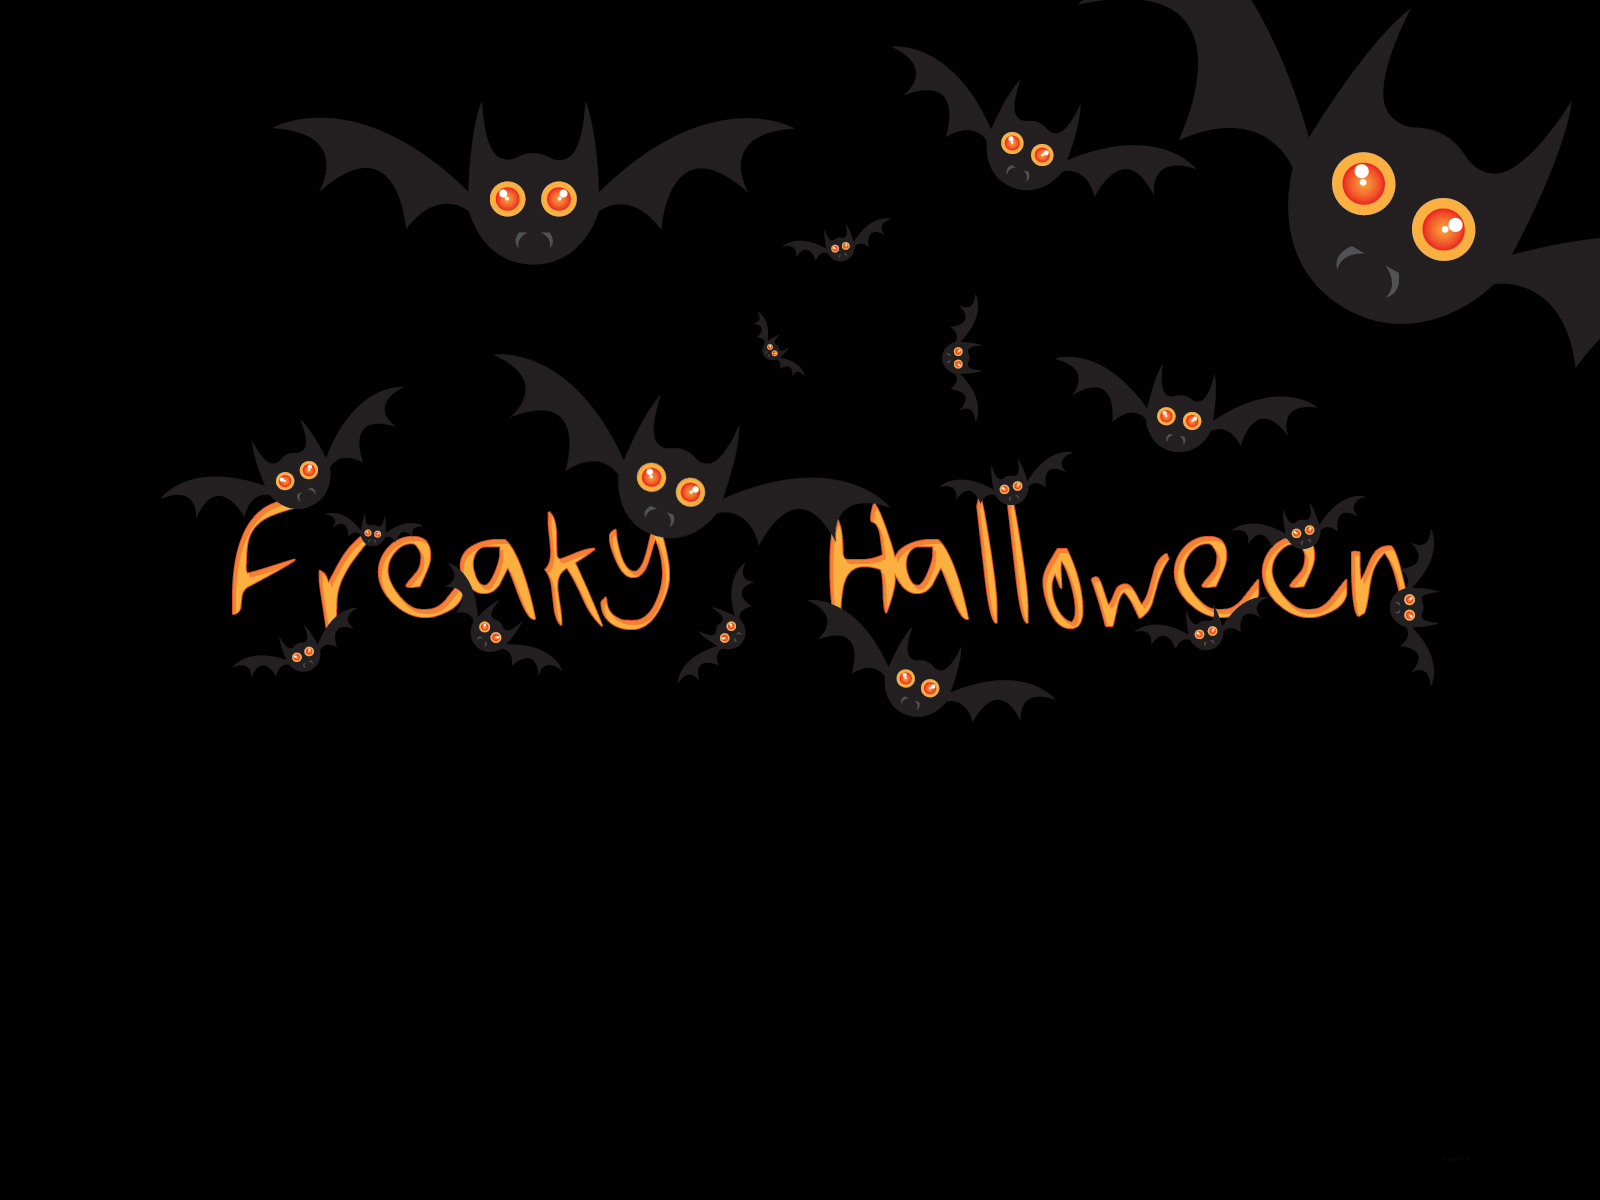 Animated Halloween Backgrounds wallpaper wallpaper hd background 1600x1200